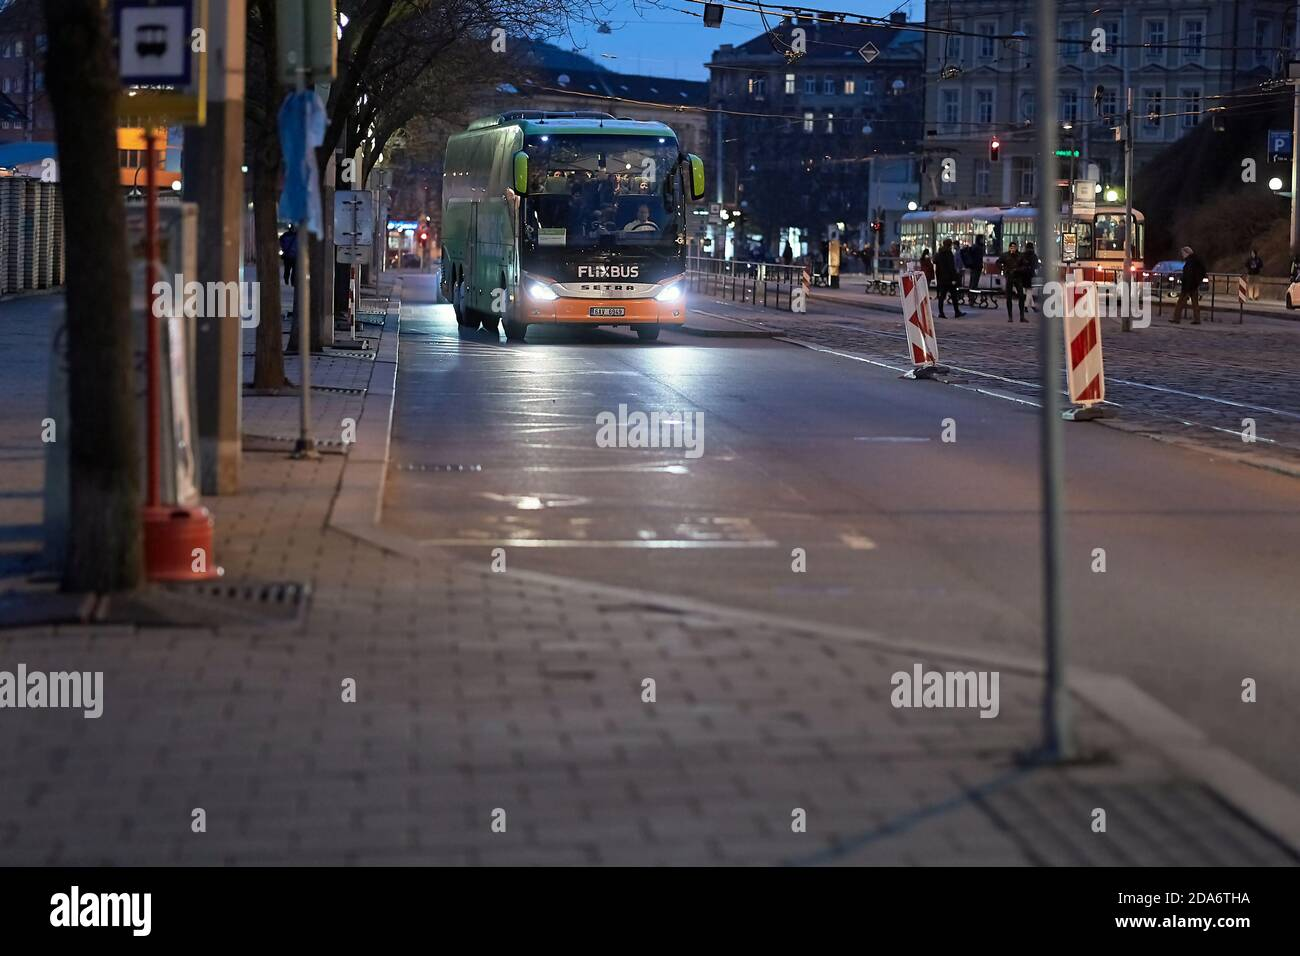 Flixbus Bus Stop High Resolution Stock Photography And Images Alamy